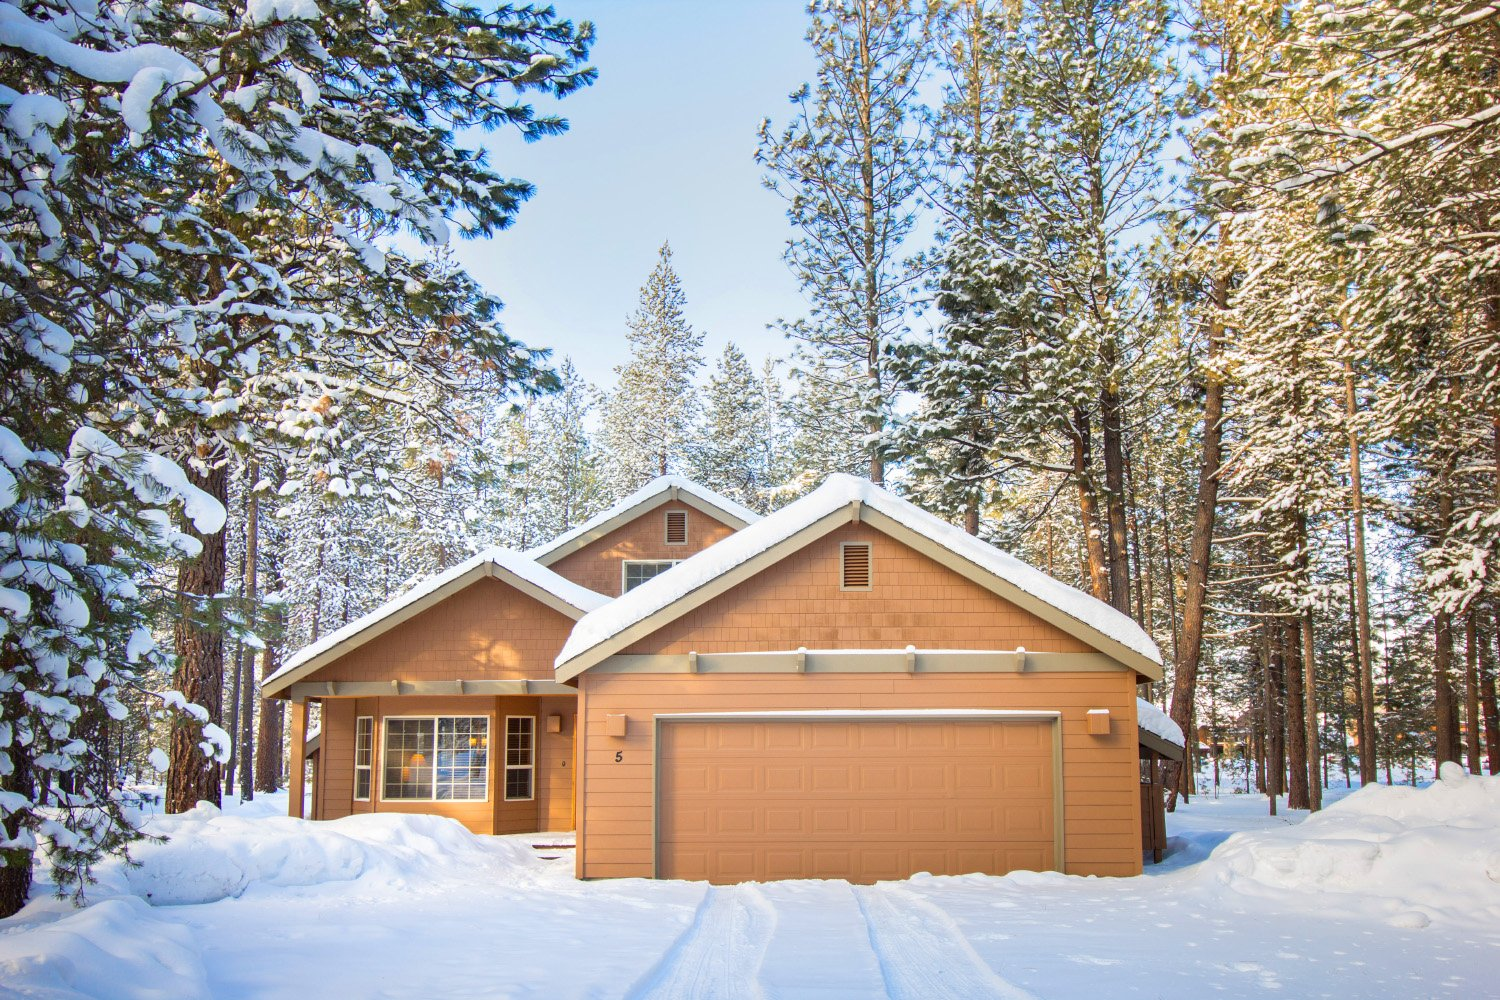 Vacation Homes in Sunriver Oregon by Liz Wade Photography